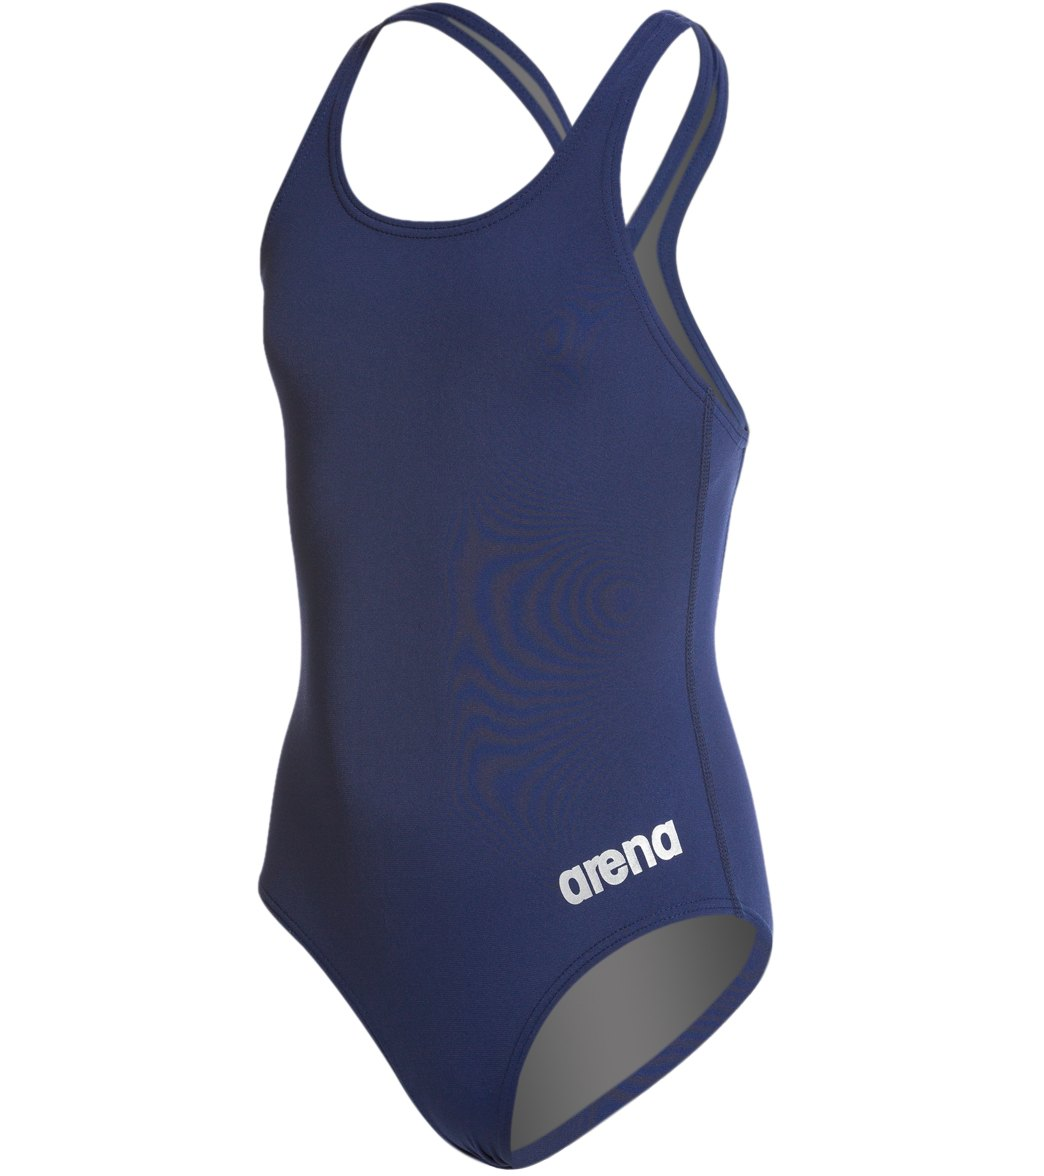 d286c0d747b Arena Girls  Madison Athletic Thick Strap Racer Back One Piece Swimsuit at  SwimOutlet.com - Free Shipping